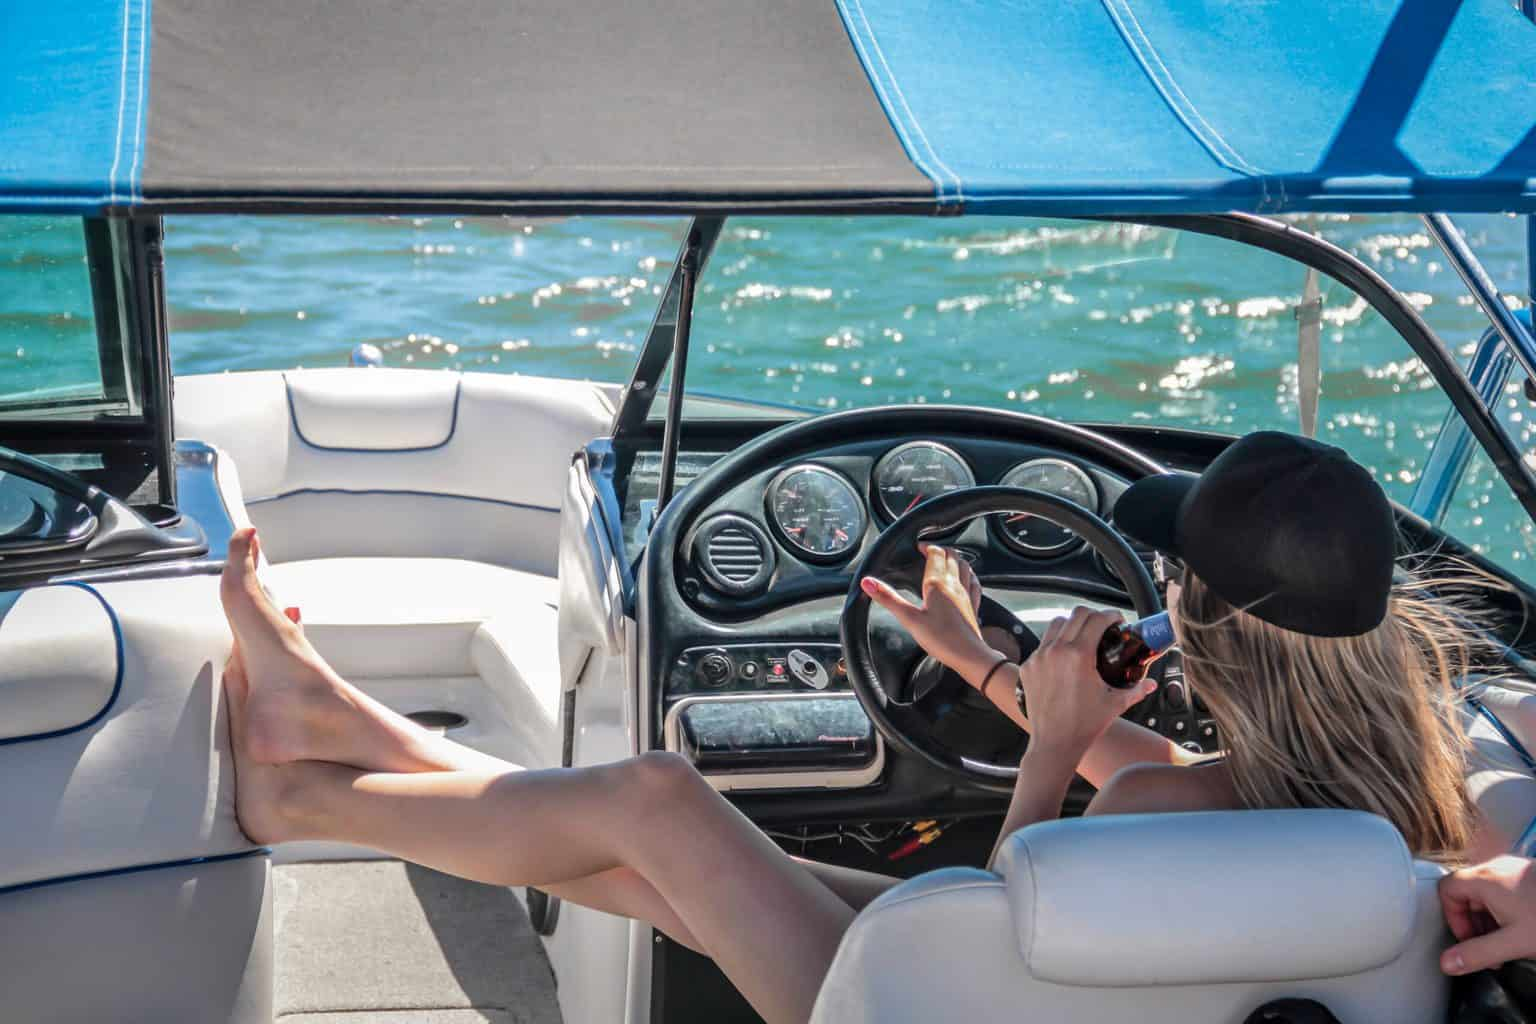 A woman sitting on a boat taking the steering wheel